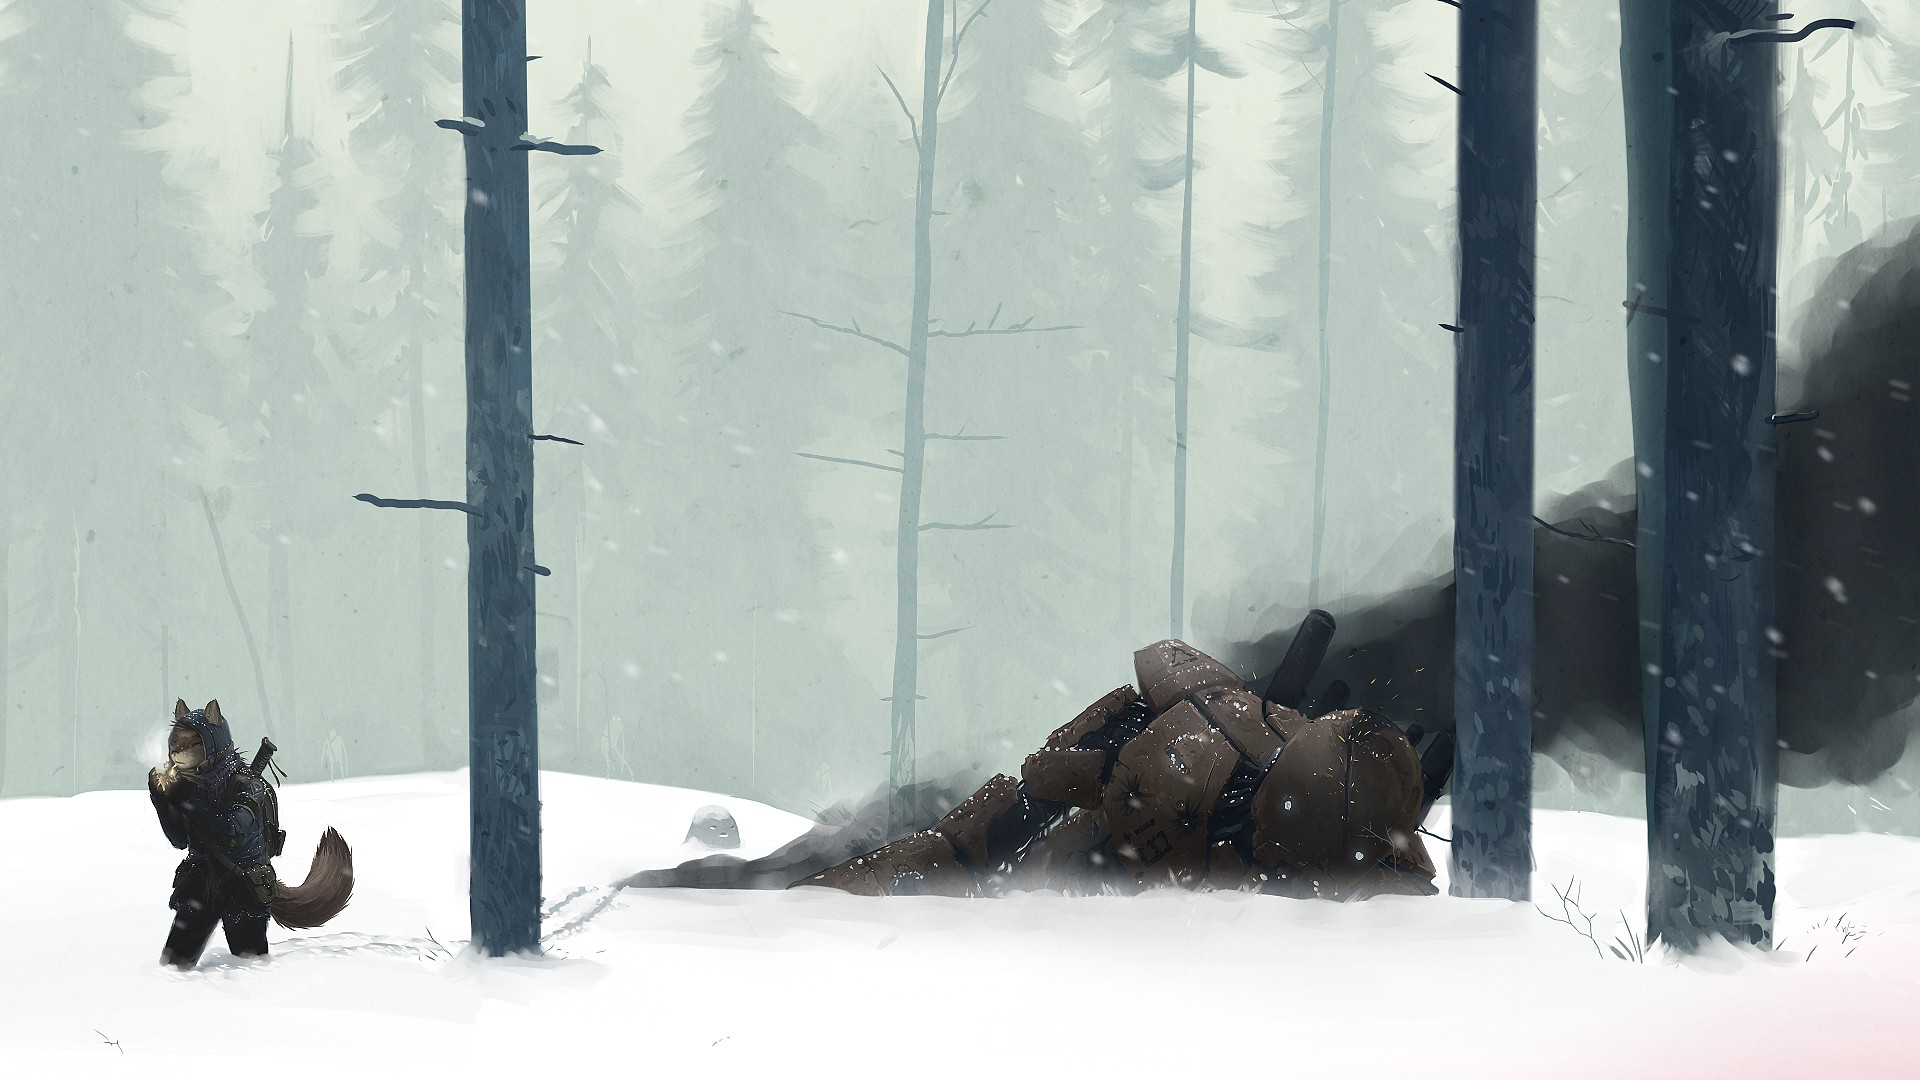 Creature 3d Movie Wallpaper Download Snow Mech Creature Wood Forest Winter Anime Furry